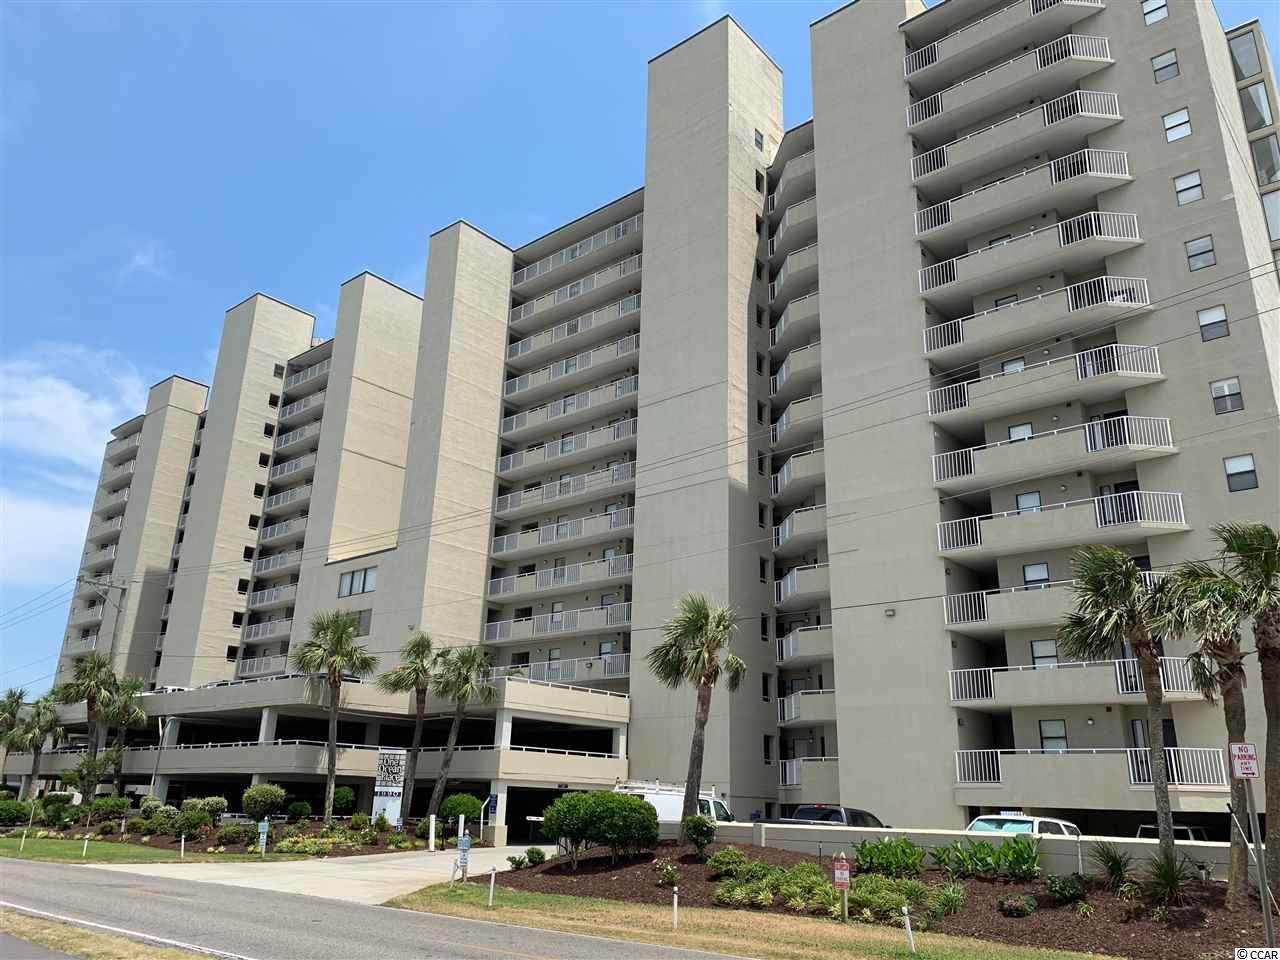 This amazing ocean front condo located in Garden City's premier condomenium complex is 3 bedrooms with 3 bathrooms.  The unit has an ocean front Master Suite with private bath along with a wrap around balcony. This using has a new A/C, Hot water heater, and appliances.